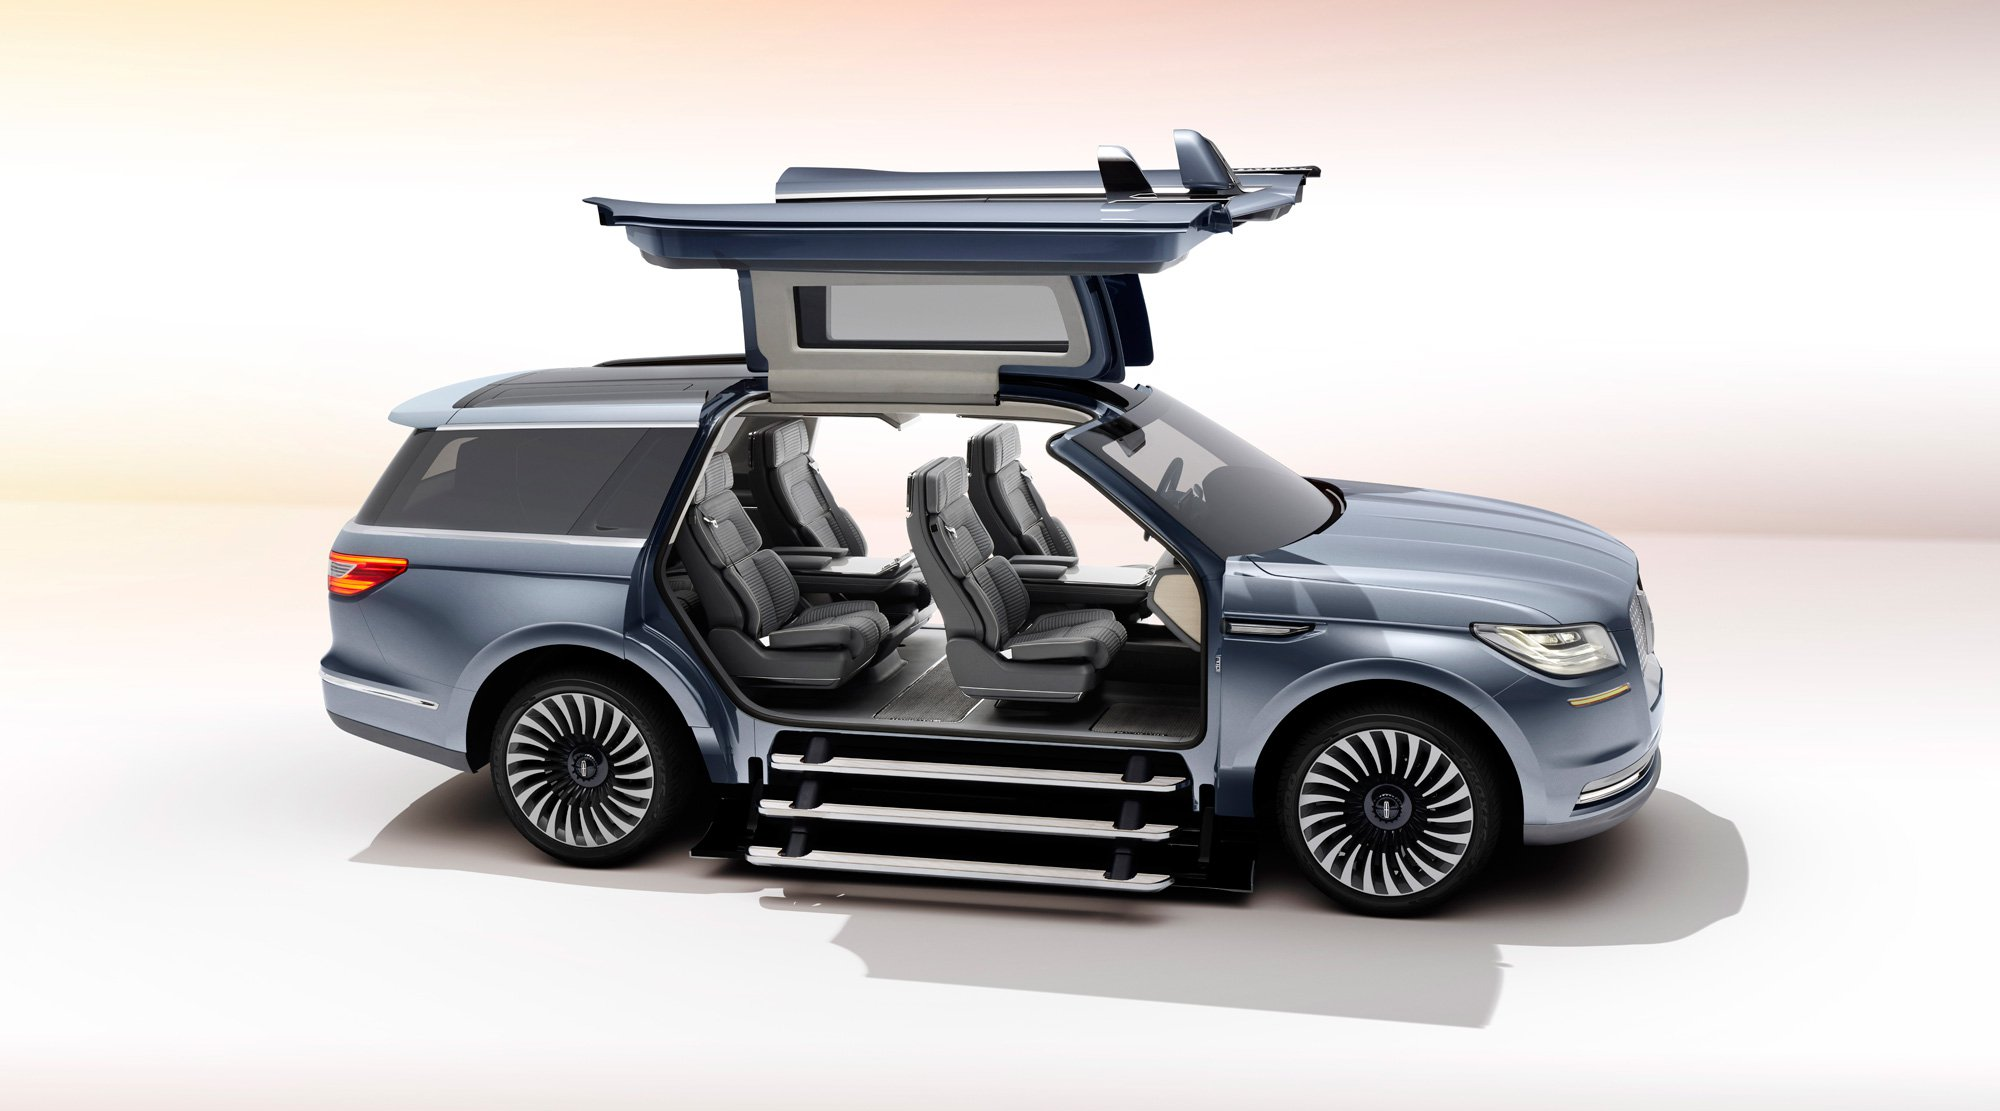 The New Lincoln Navigator Concept is a Crazy SUV with Supercar Doors